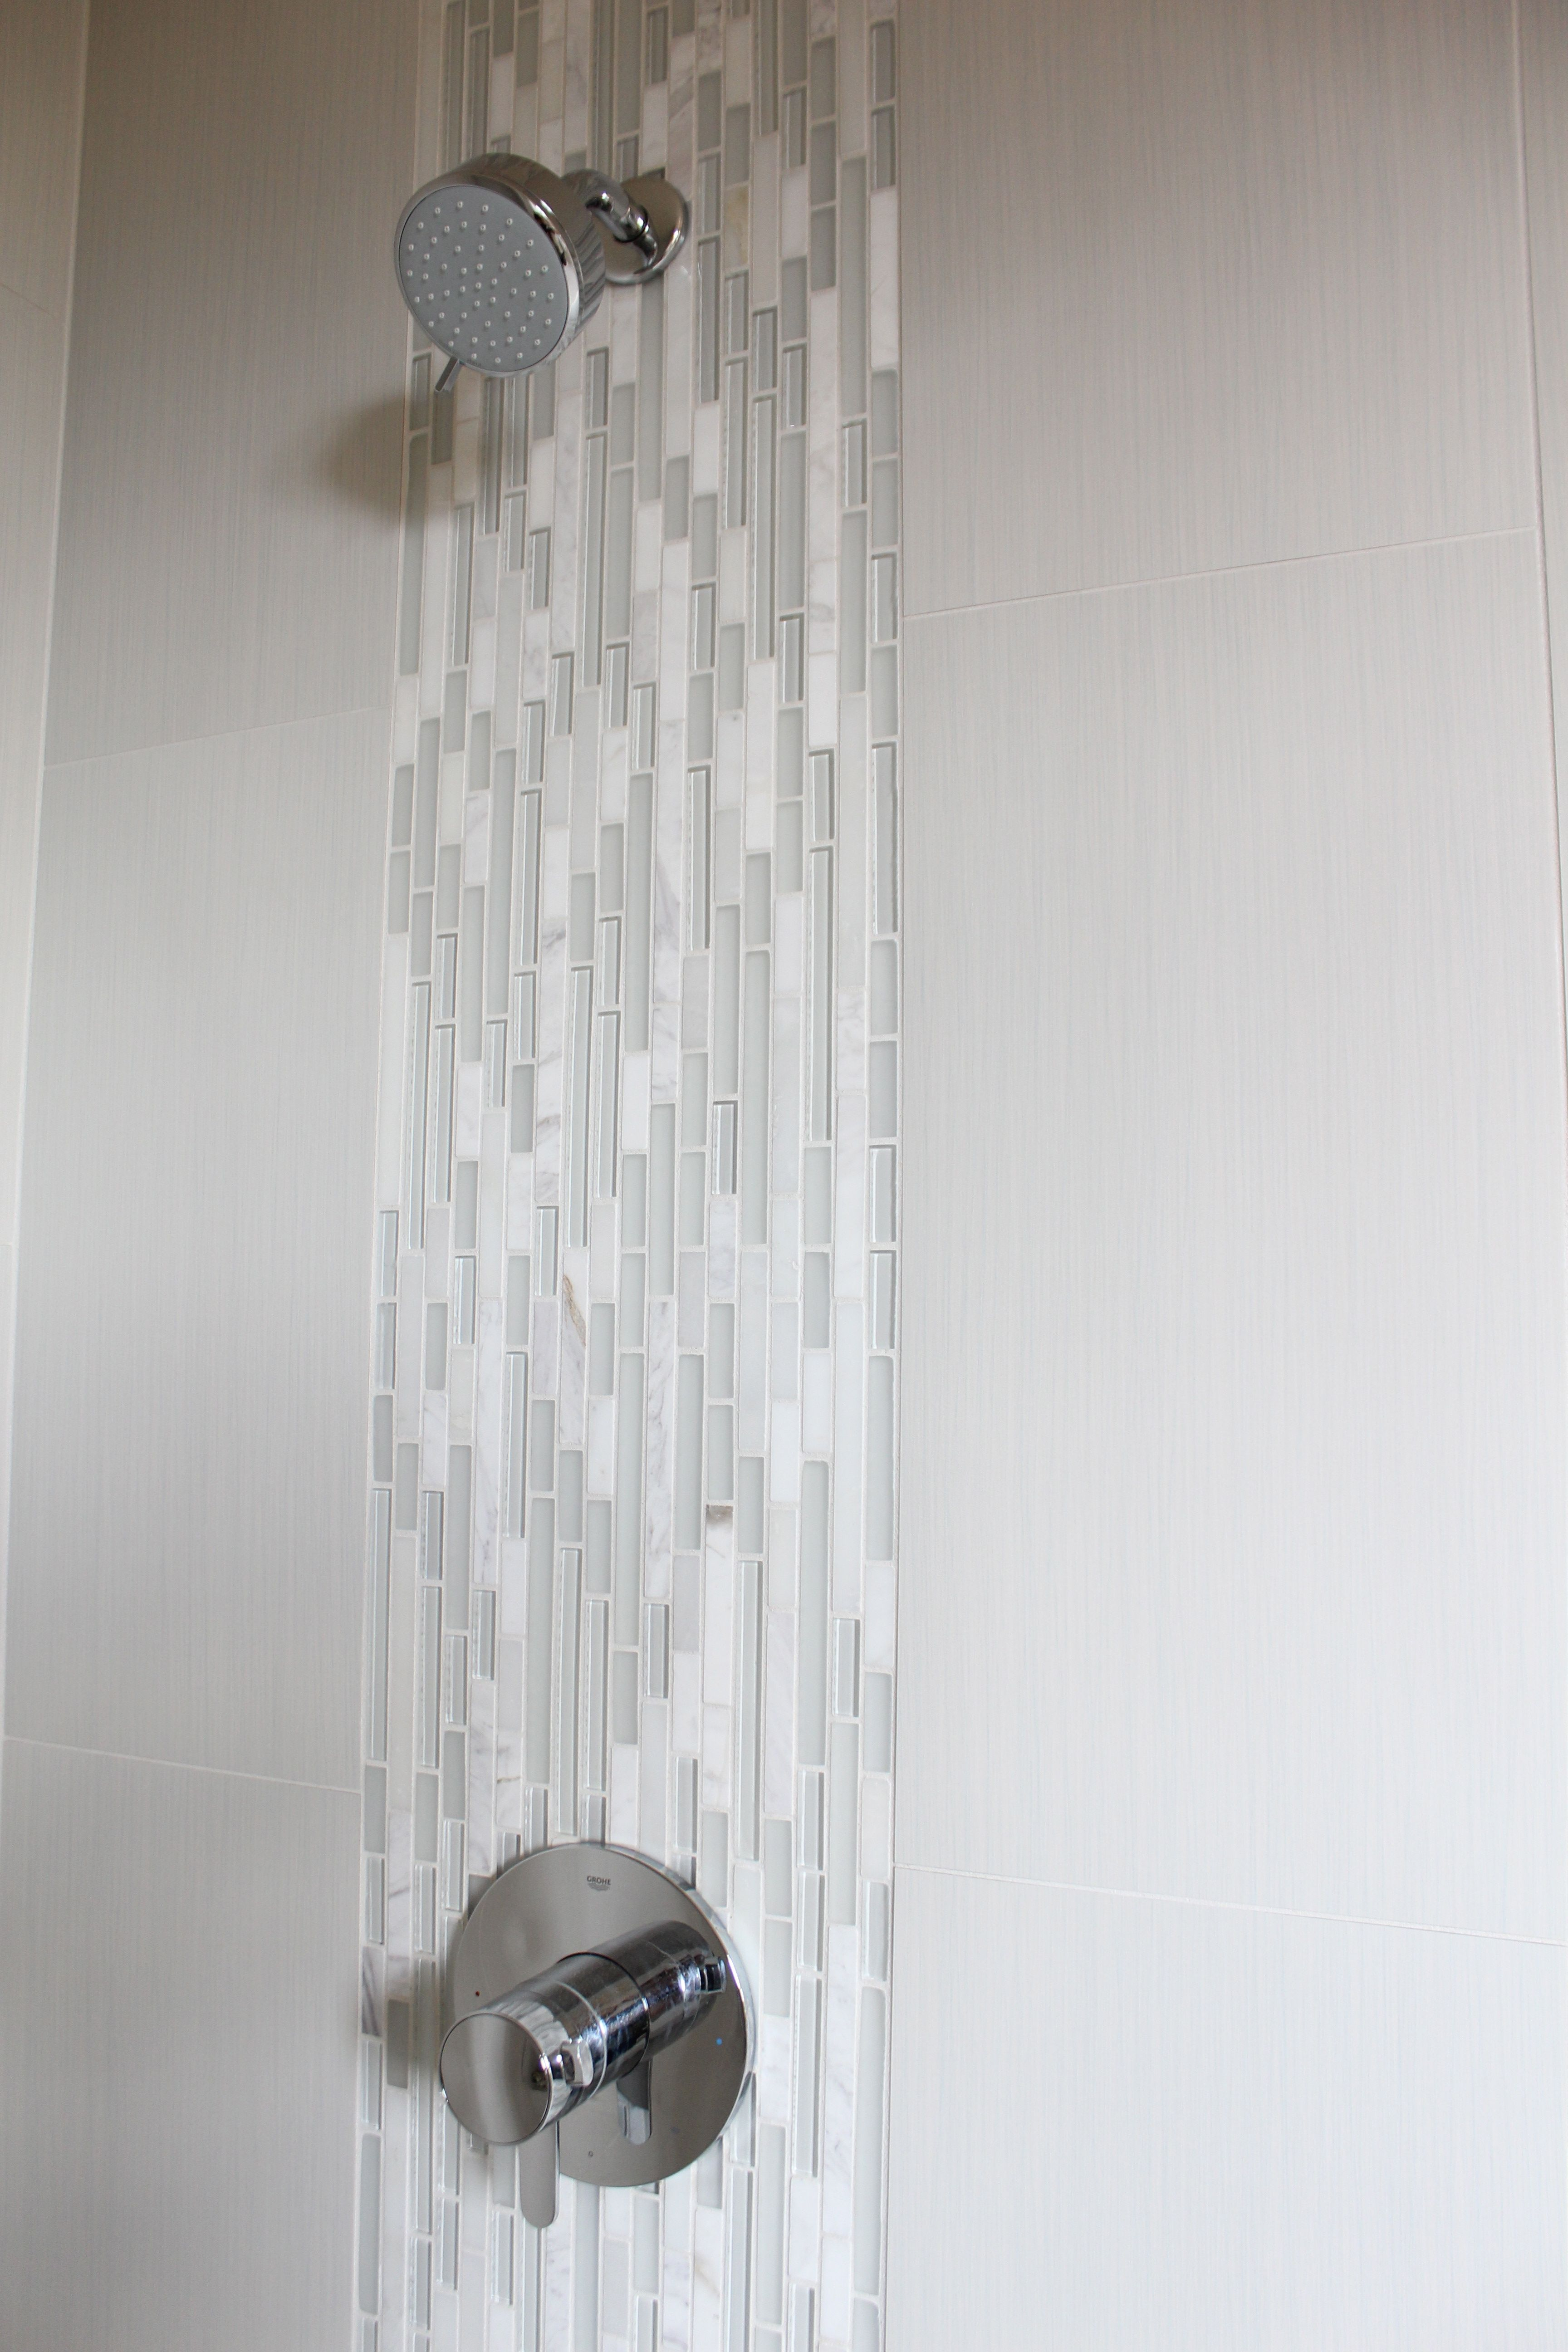 Waterfall Detail In Master Shower Emser Tile 12x24 Strands In Pearl Vertically Stacked With